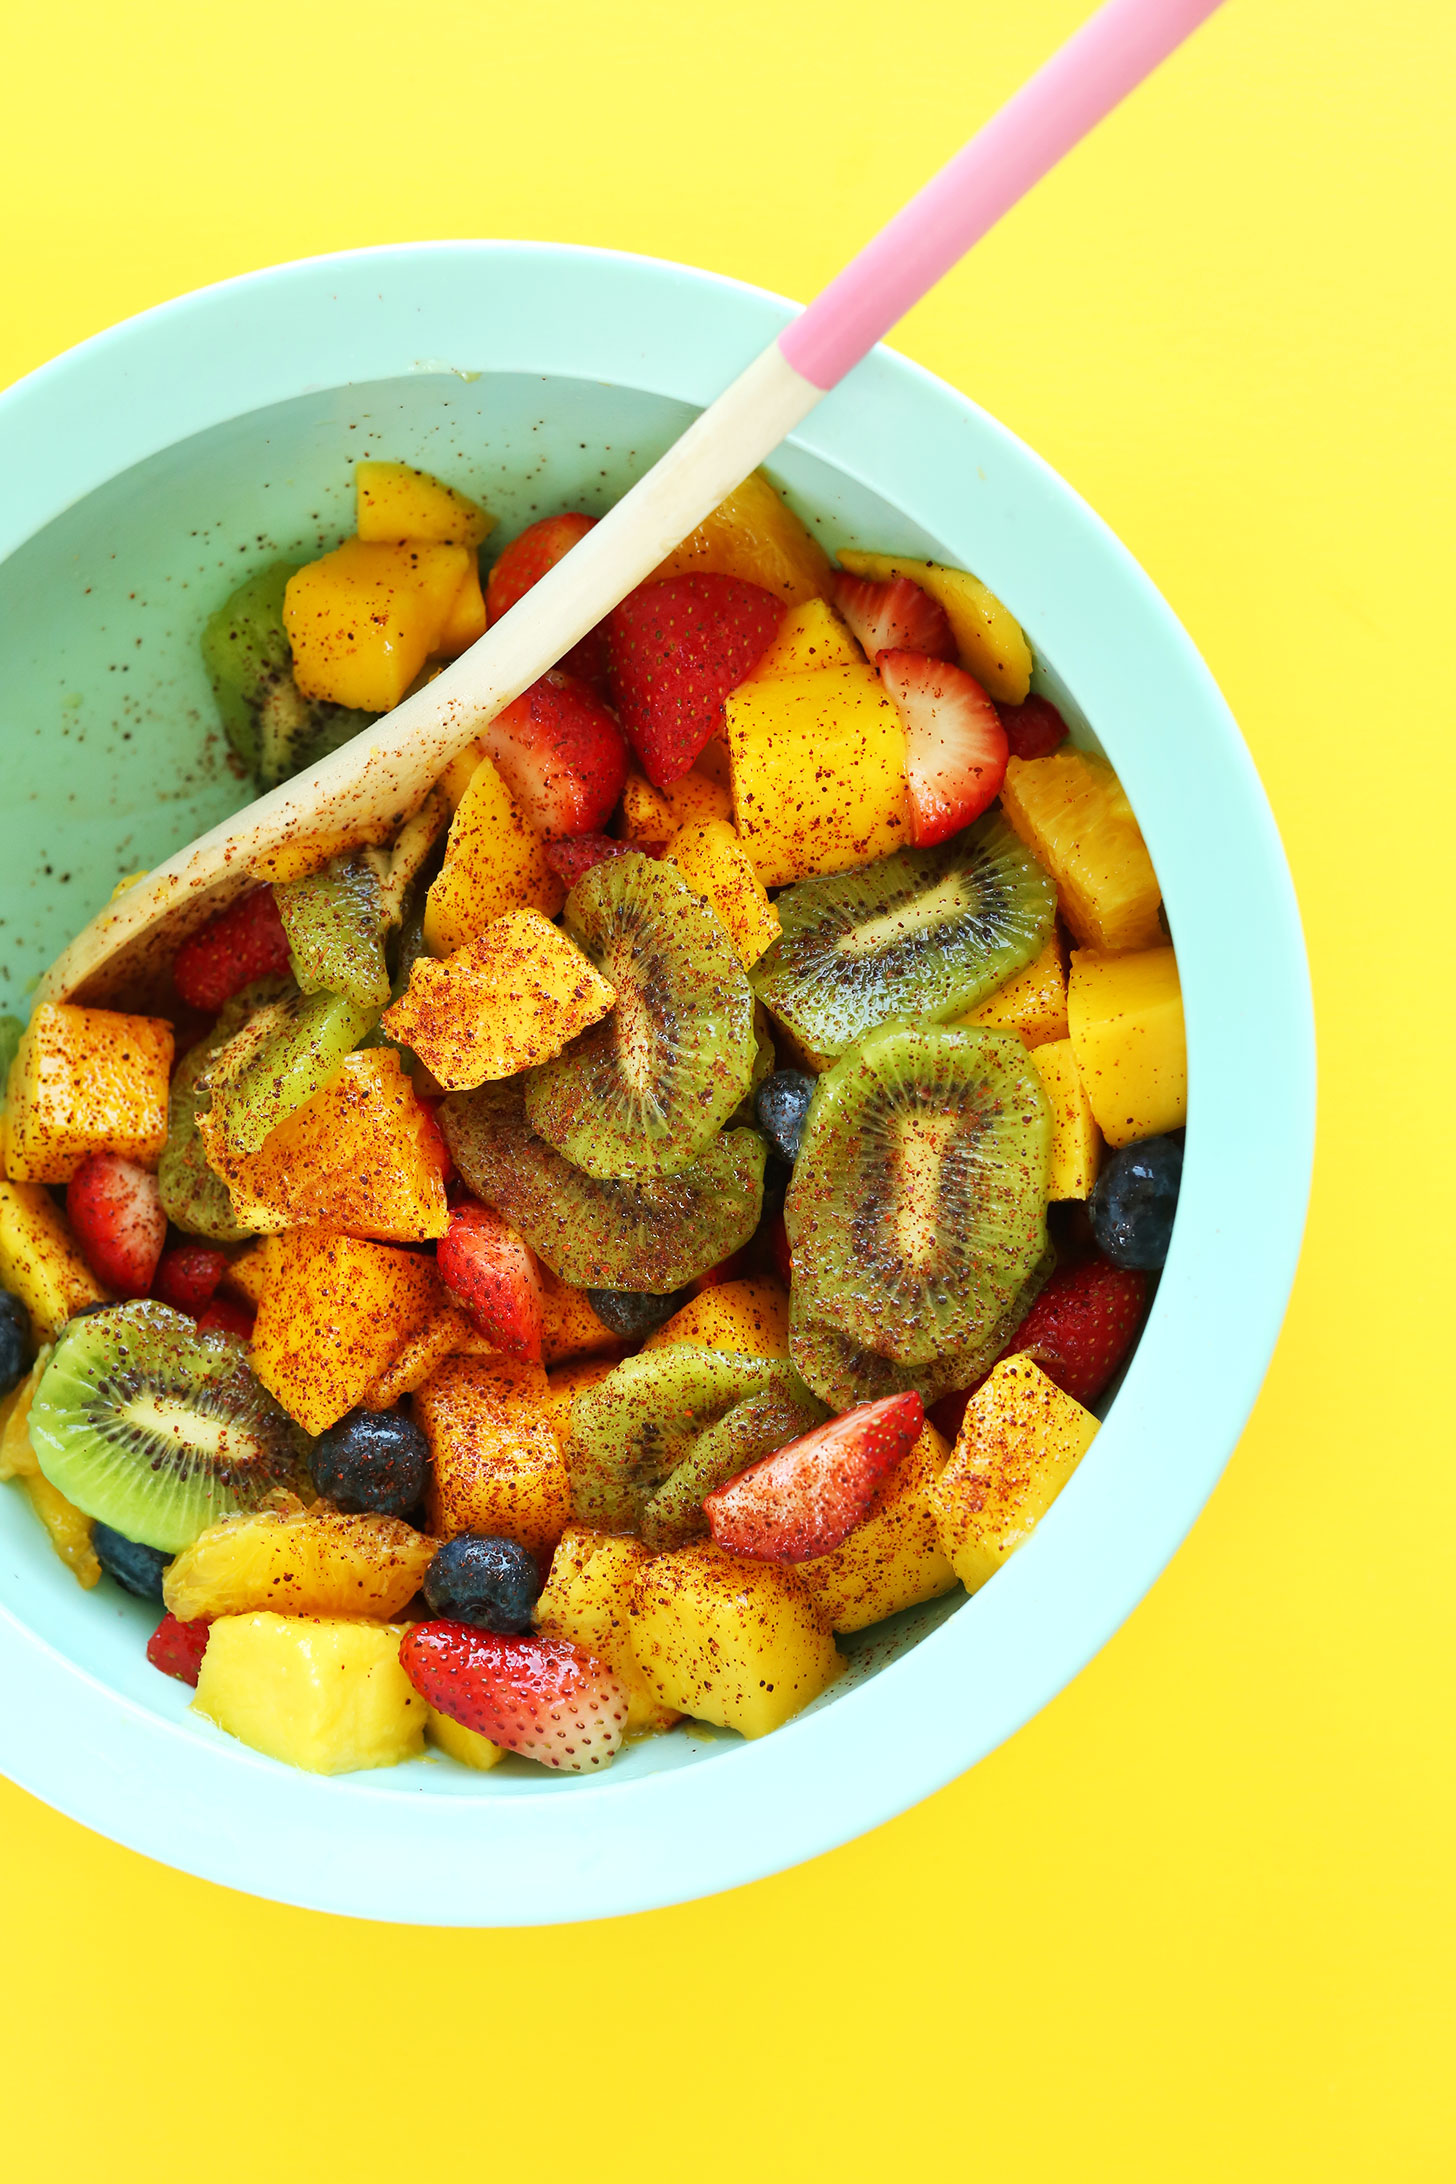 A bowl of our Spicy Fruit Salad sprinkled with chili powder for a kick of heat